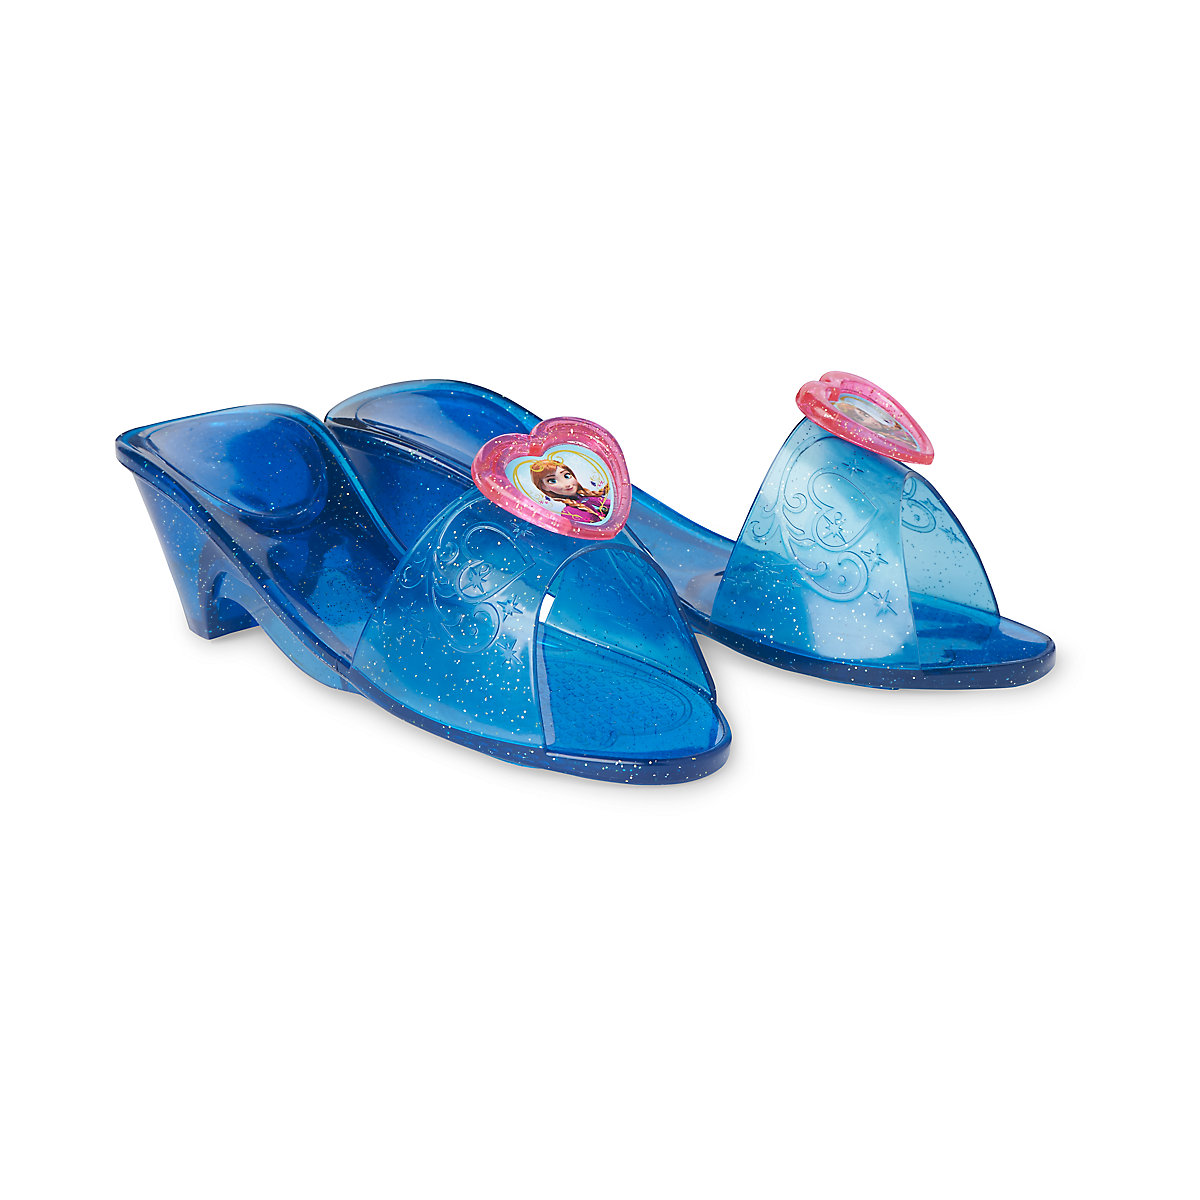 New ELC Girl Disney frozen anna jelly shoes Toy From 3 years - Dressing Up Gifts